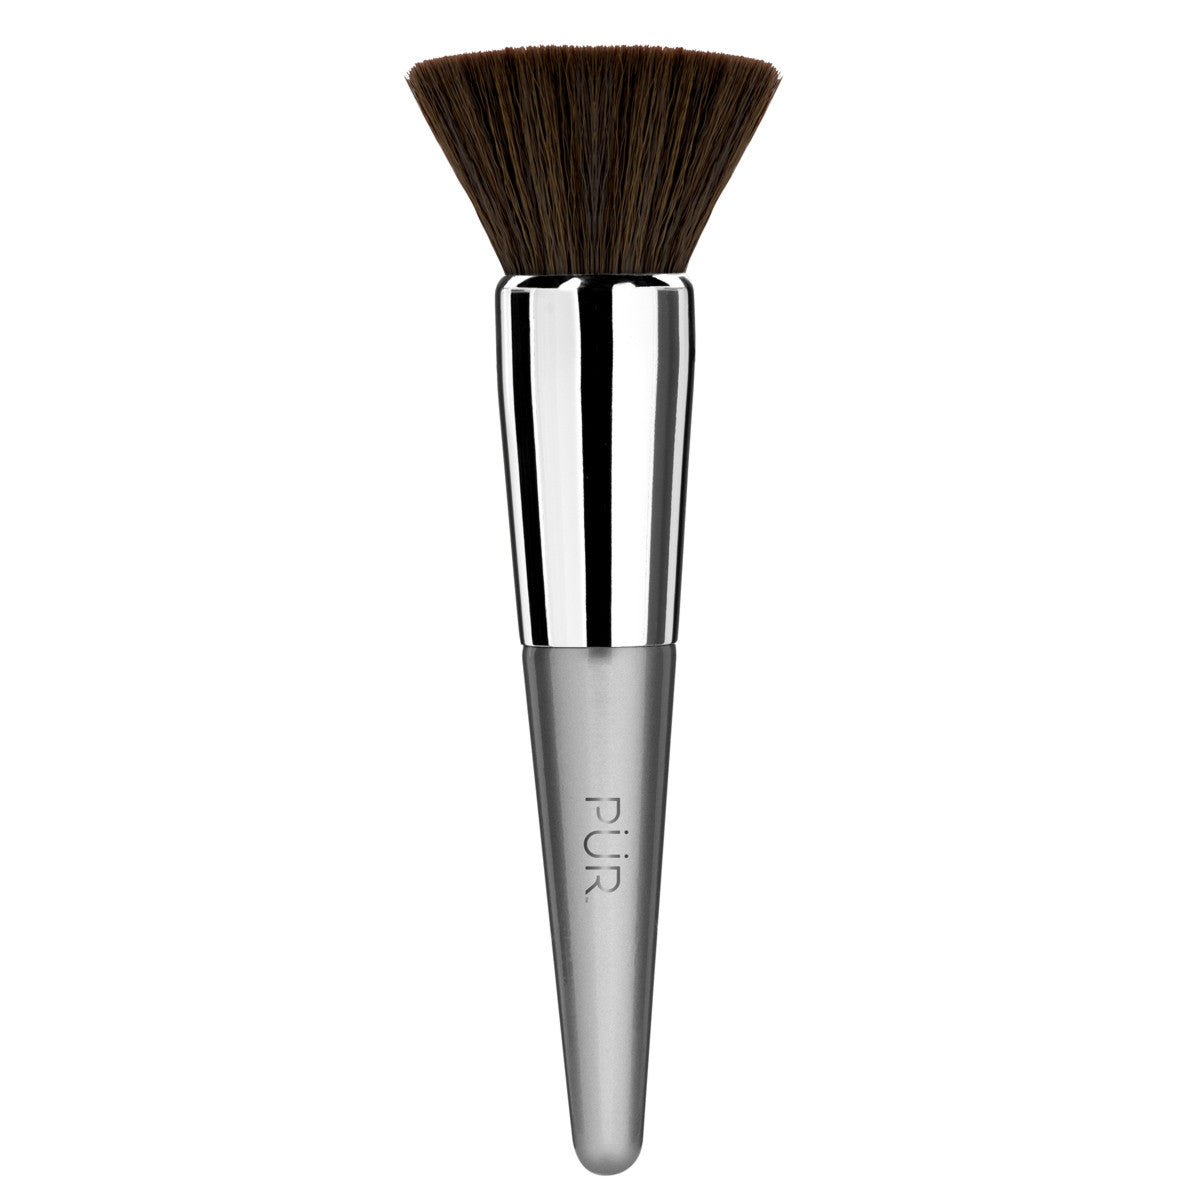 PÜR Love Your Selfie Bholder Brush